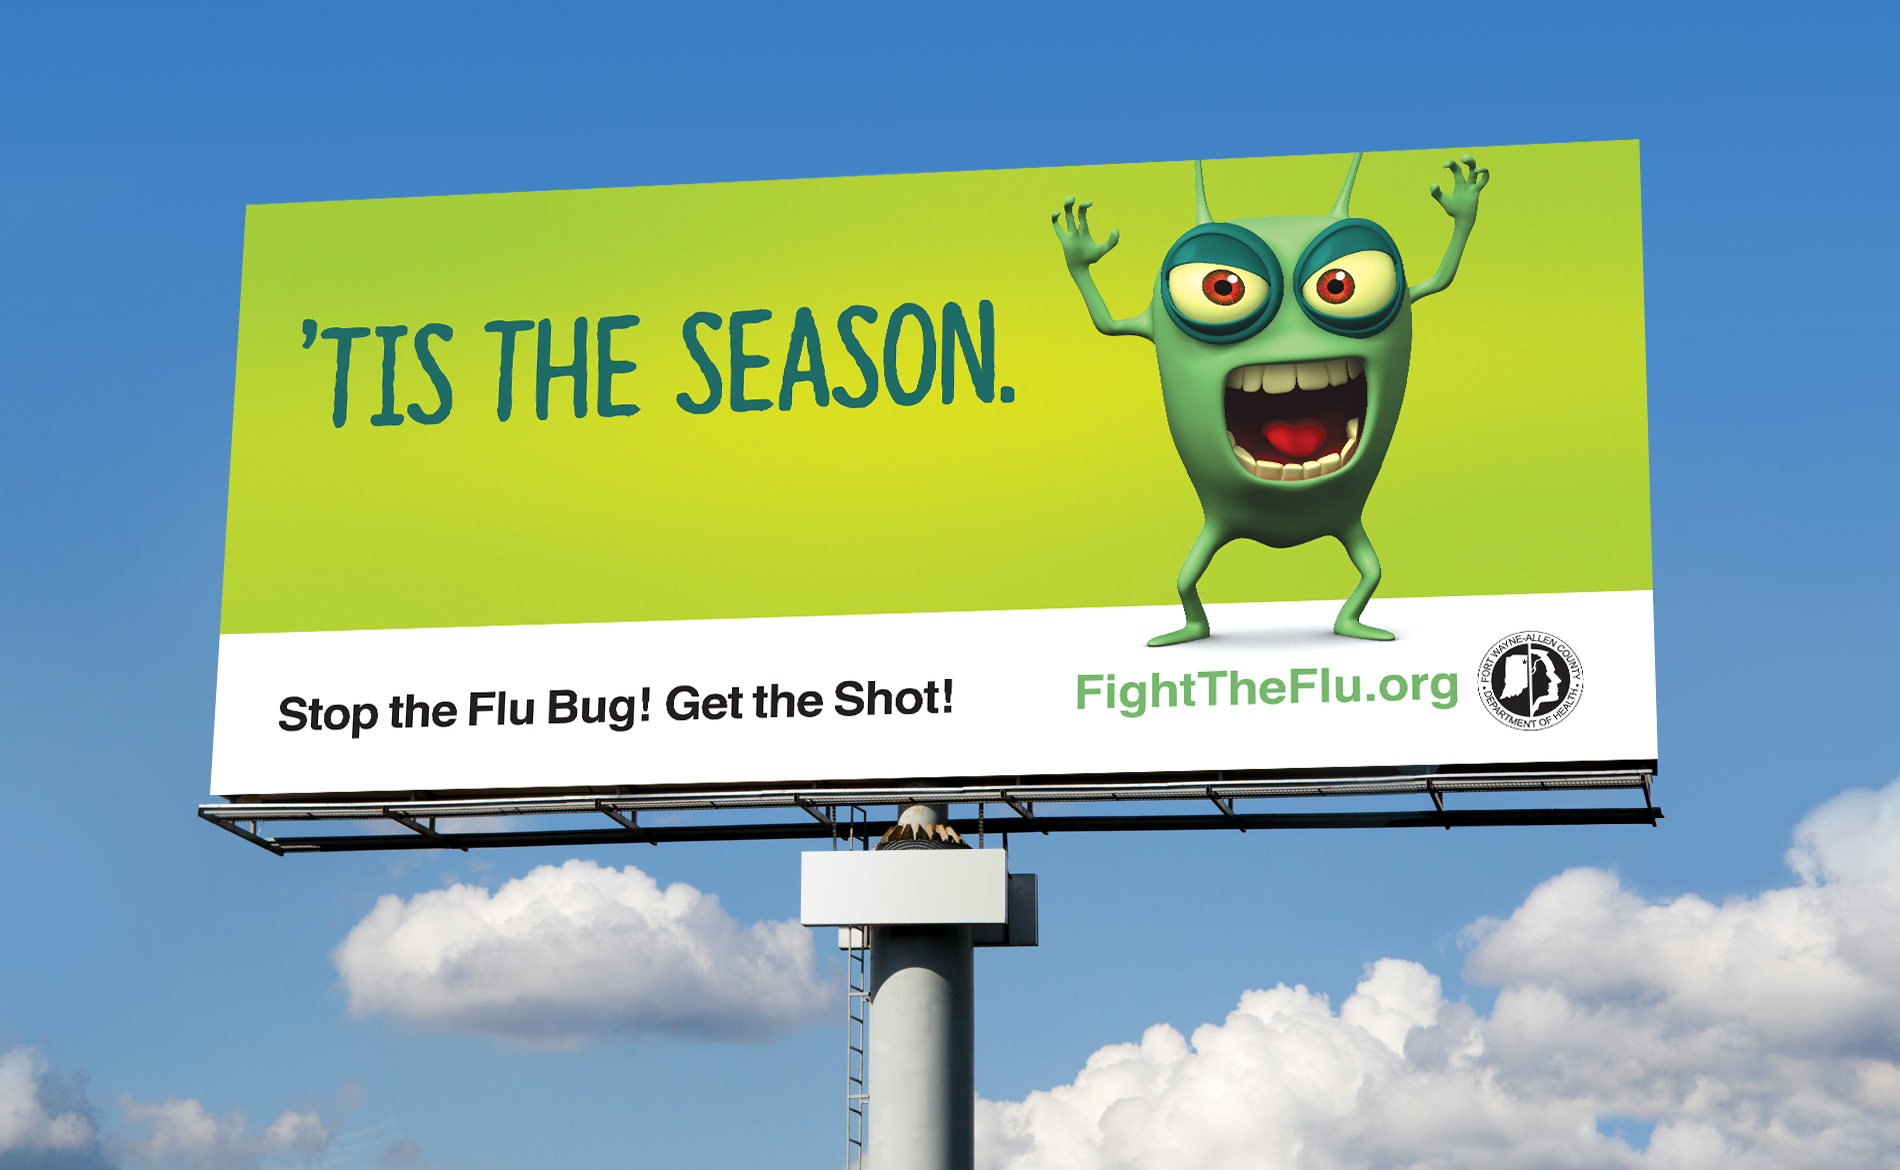 Allen County Health Flu Shot Outdoor